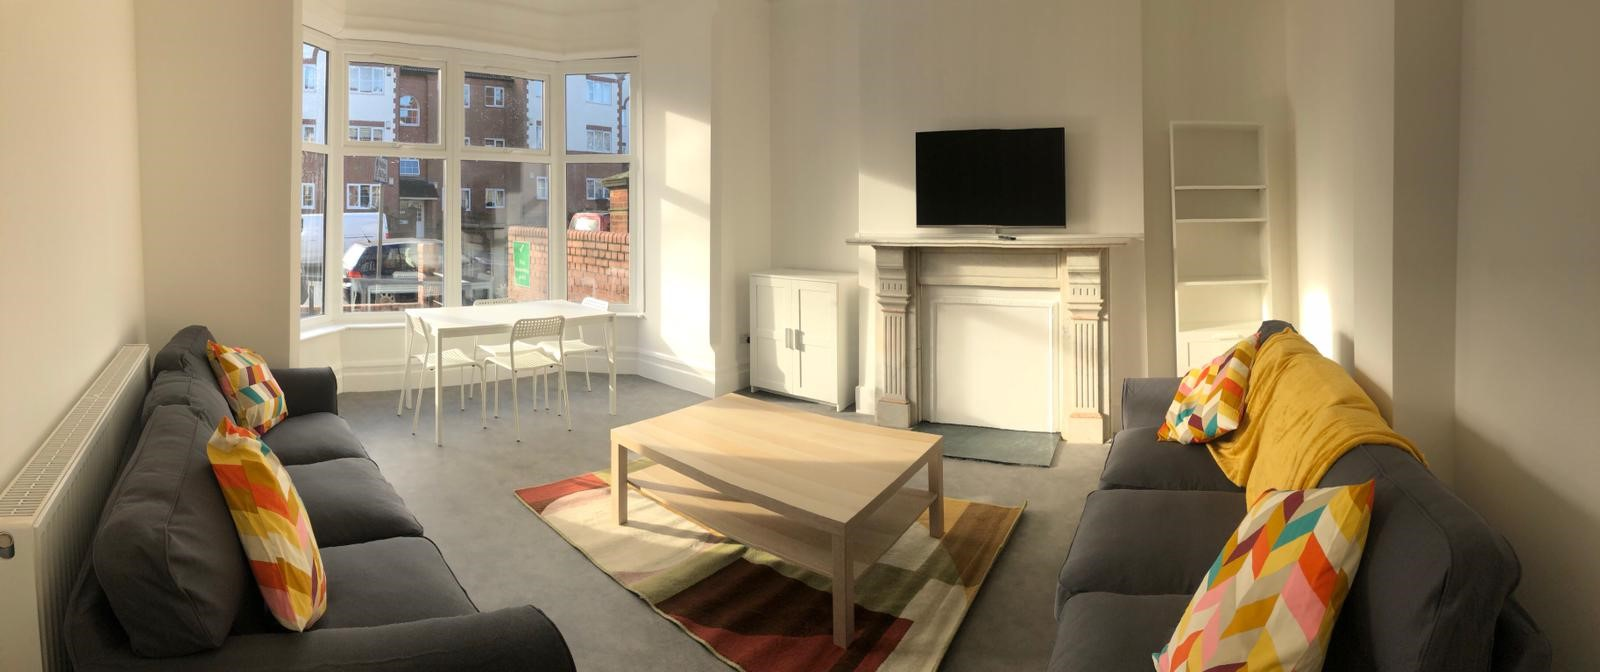 Park Lodge Project - Hinckley Road Hub - Resident Front Lounge